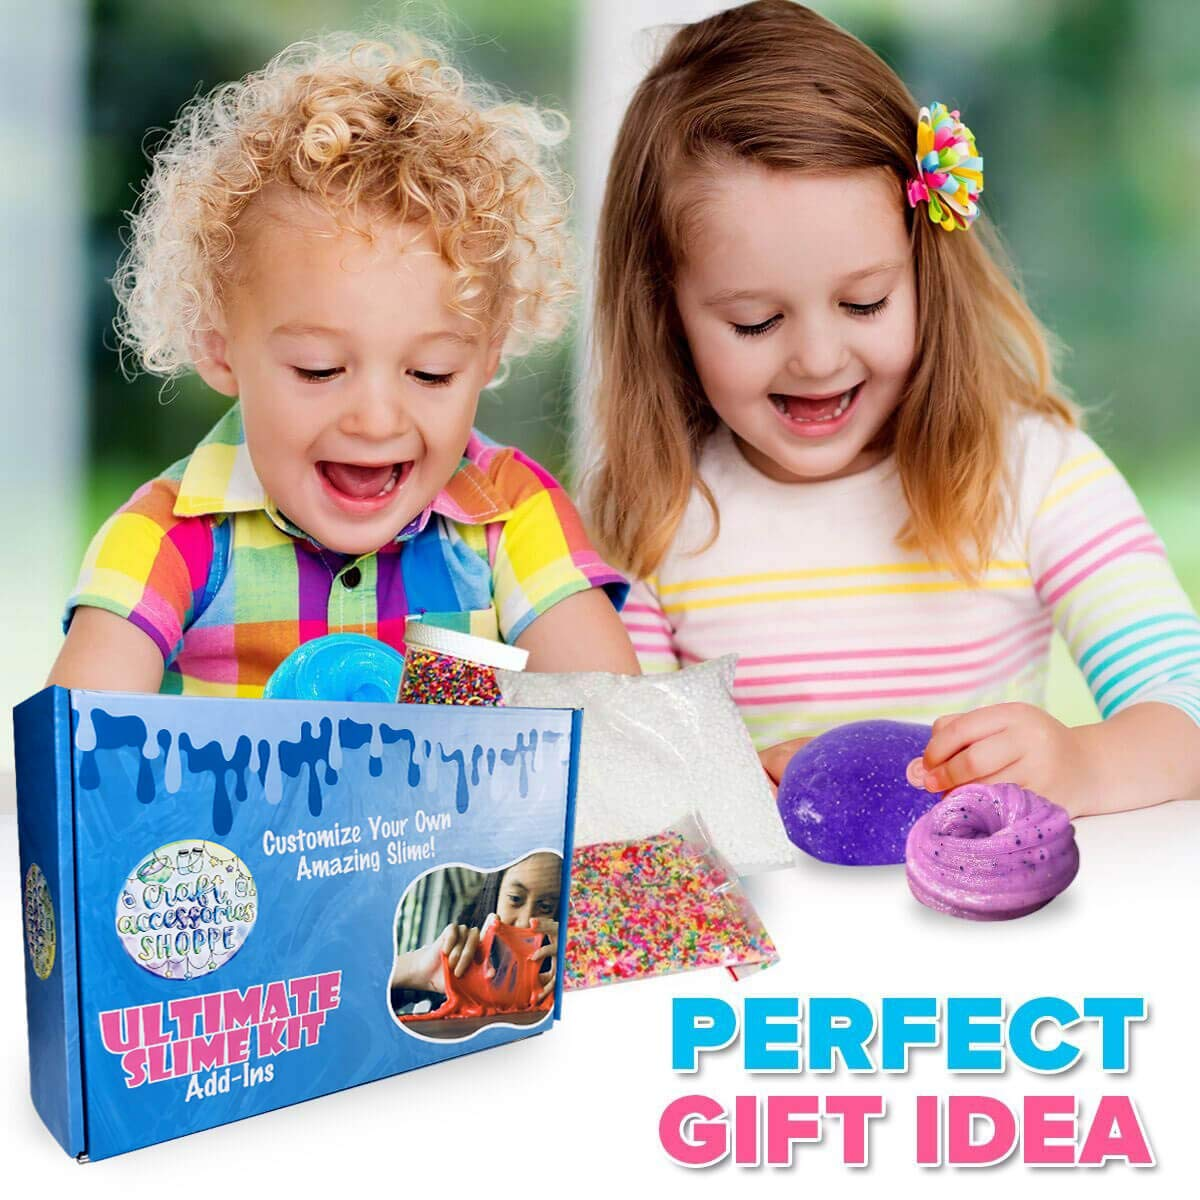 Ultimate Slime Kit for Girls and Boys | Slime Kit with Slime Supplies | Complete DIY Slime Making Kit | Includes Slime Ingredients, 10 Colors, 8 Different Add-Ins | Colorful Slime Kits for Family Fun by Lily and Lee's Craft Accessories Shoppe (Image #4)